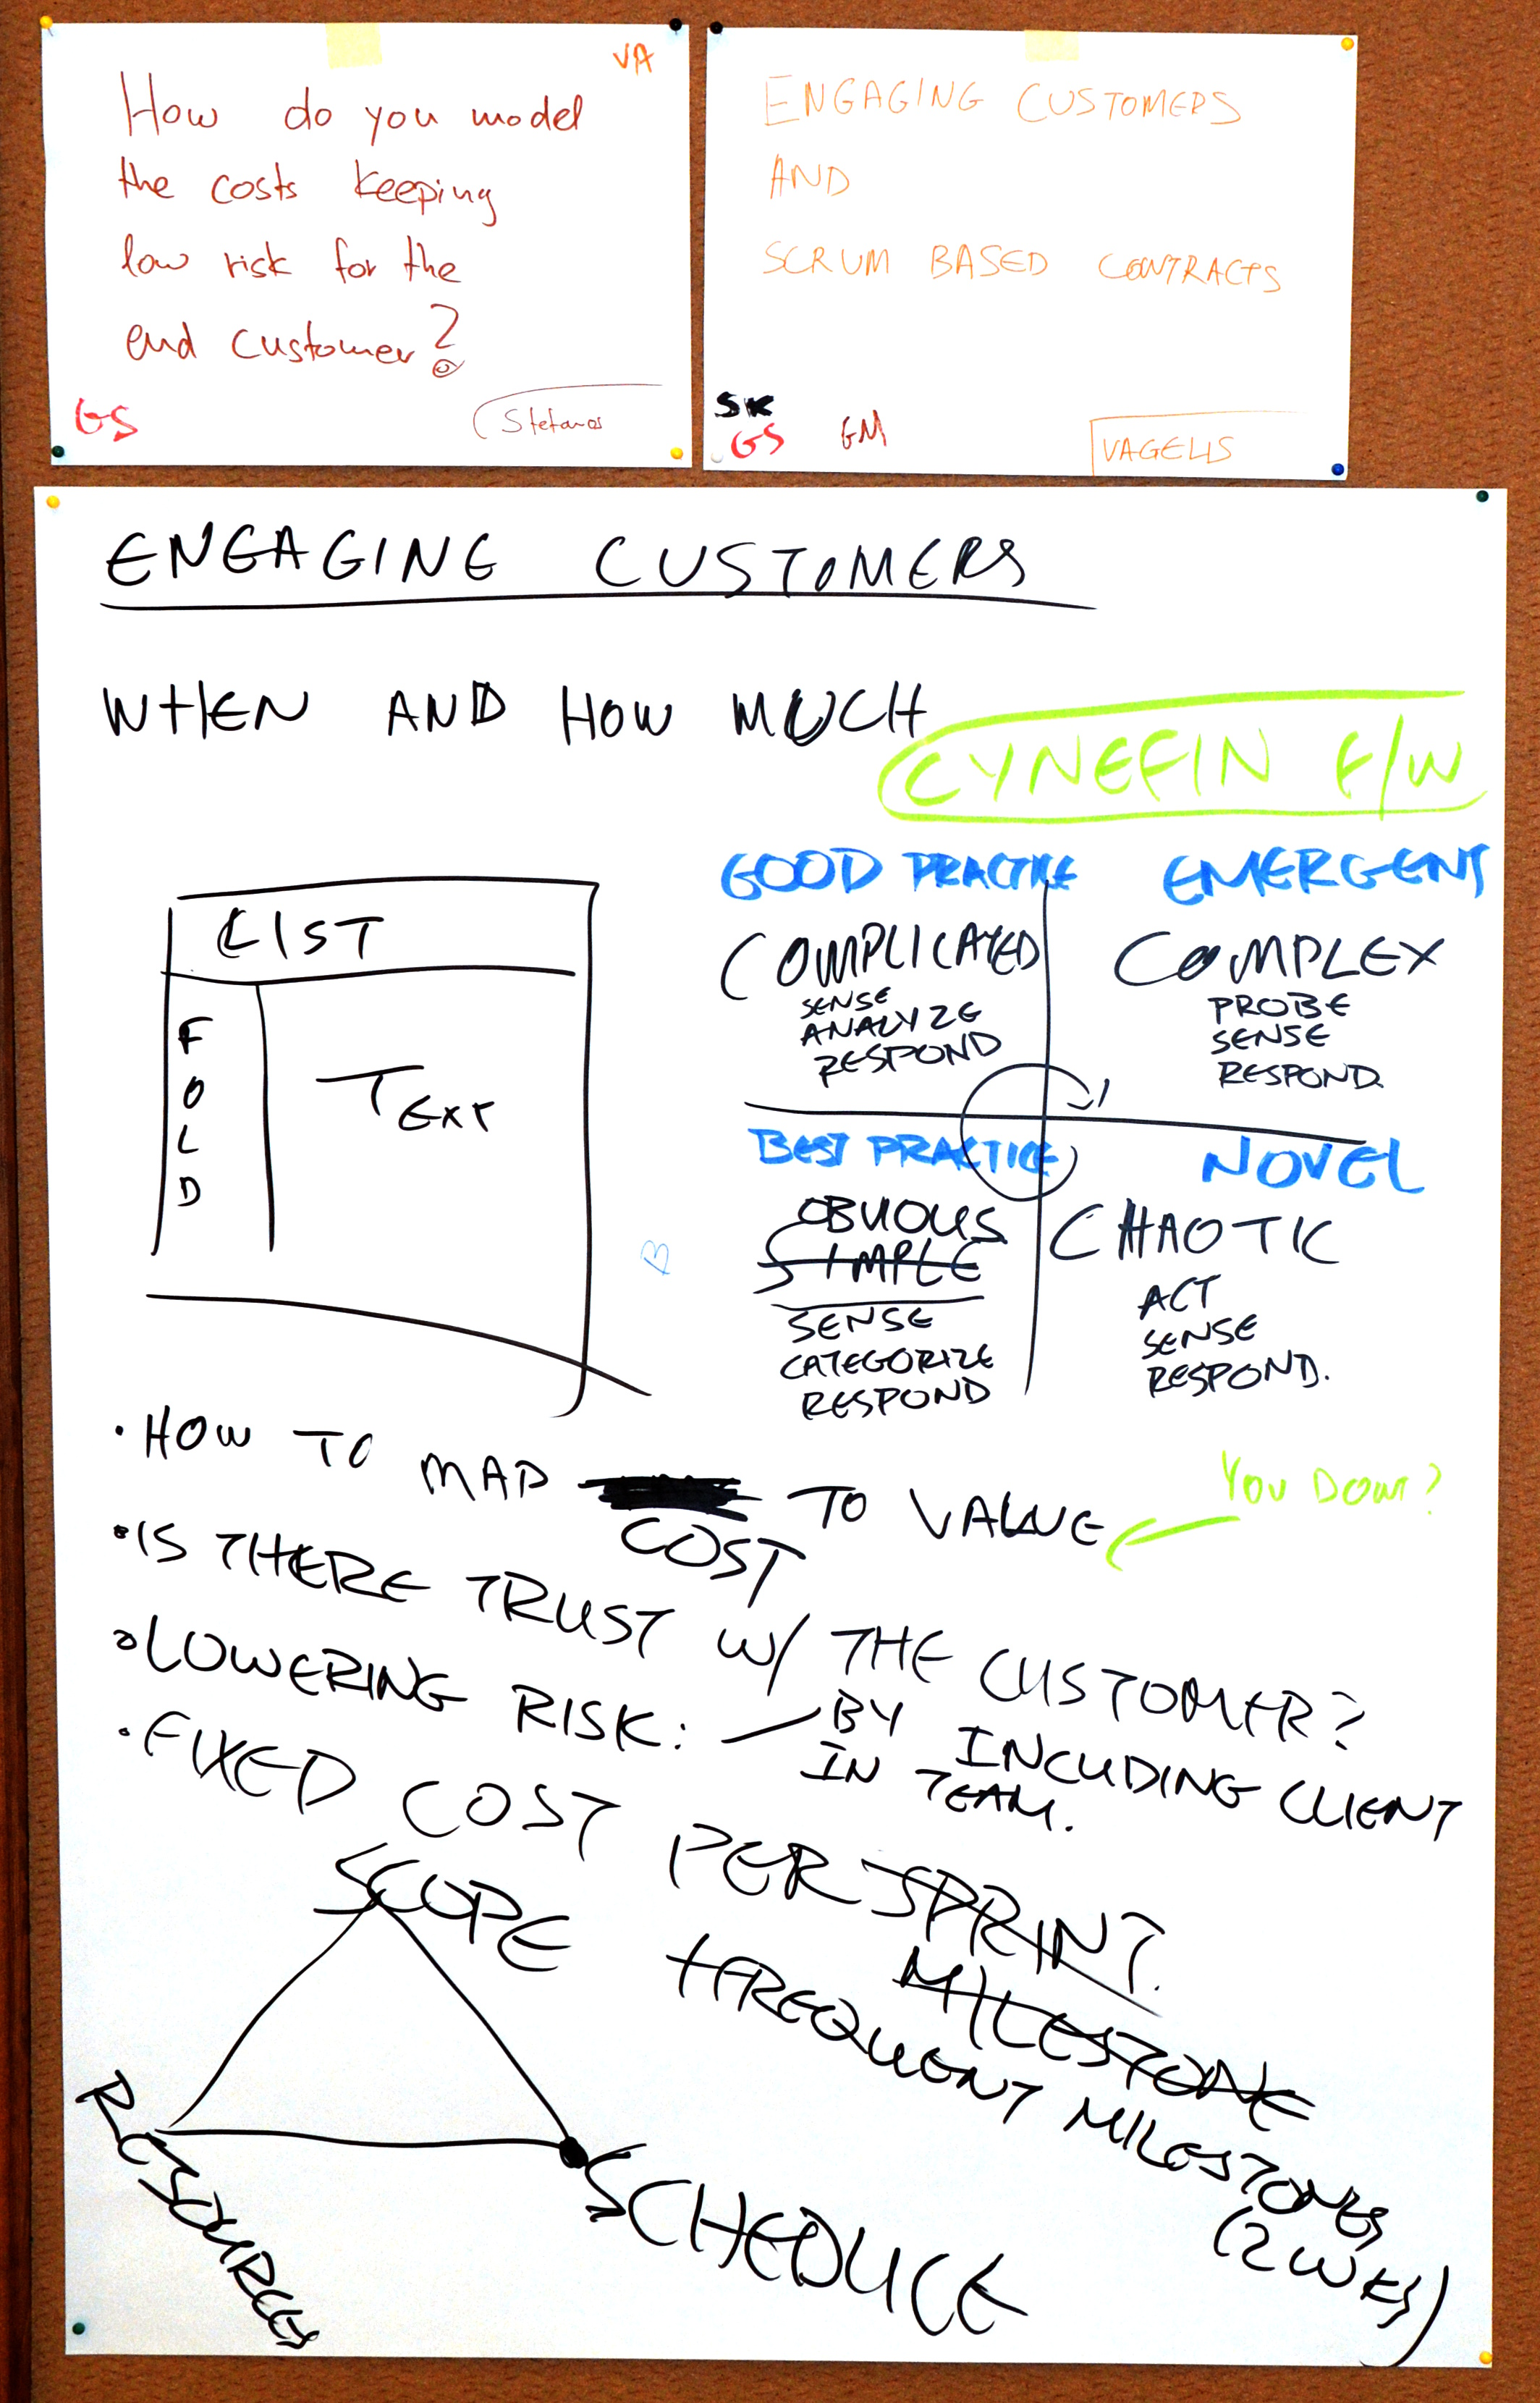 Harvest - Engaging customers